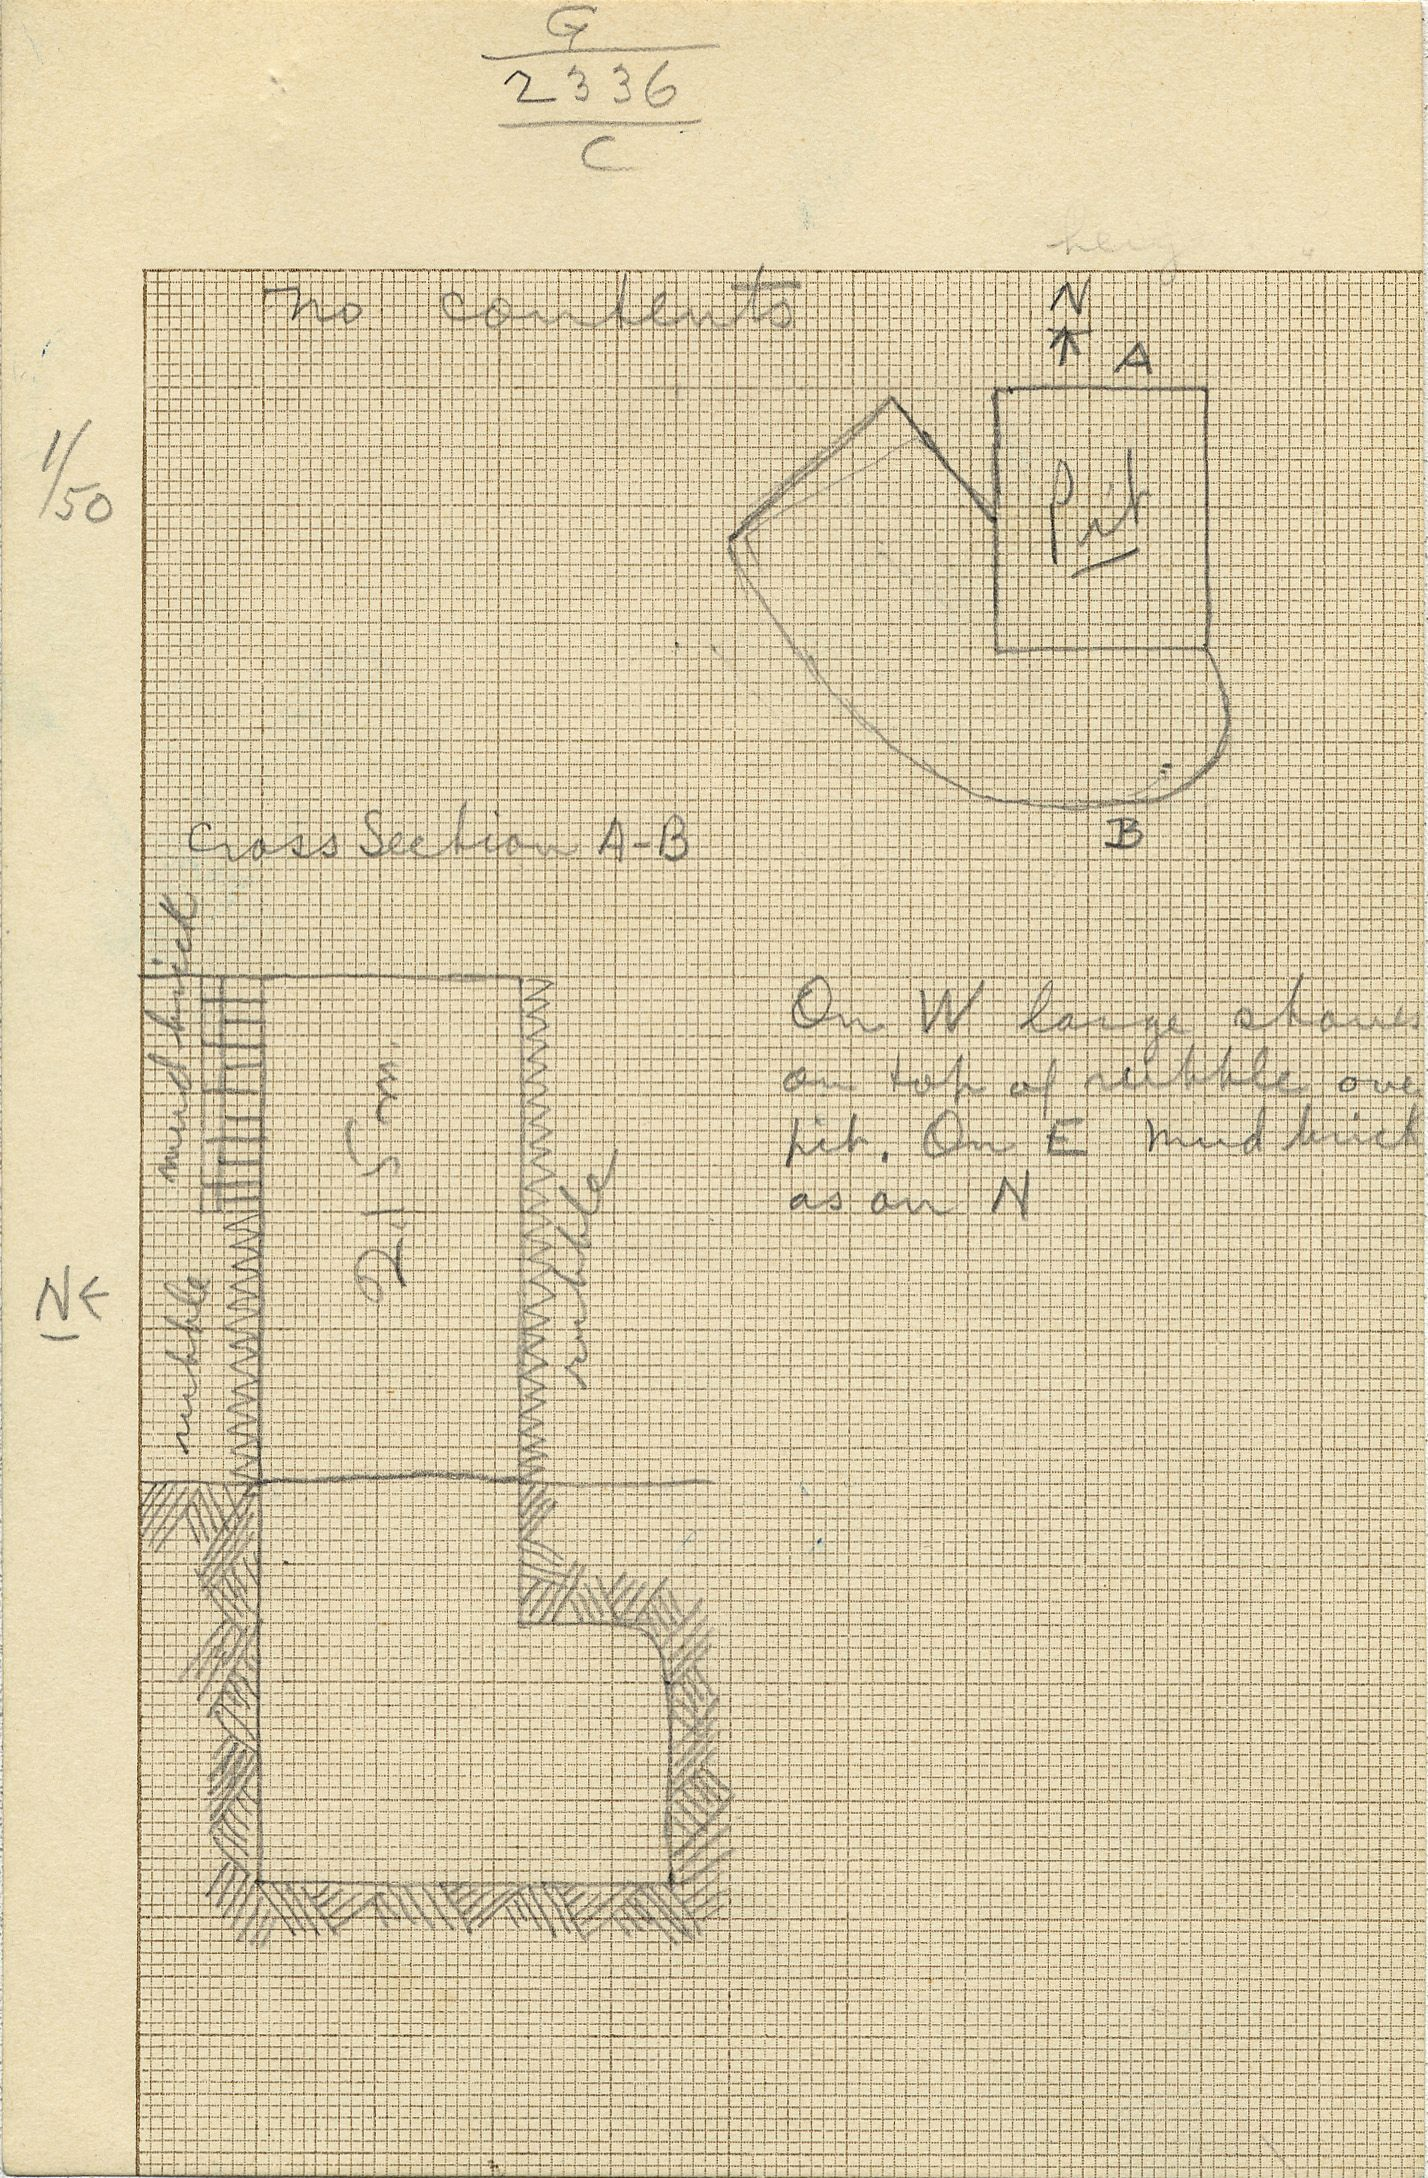 Maps and plans: G 2336, Shaft C